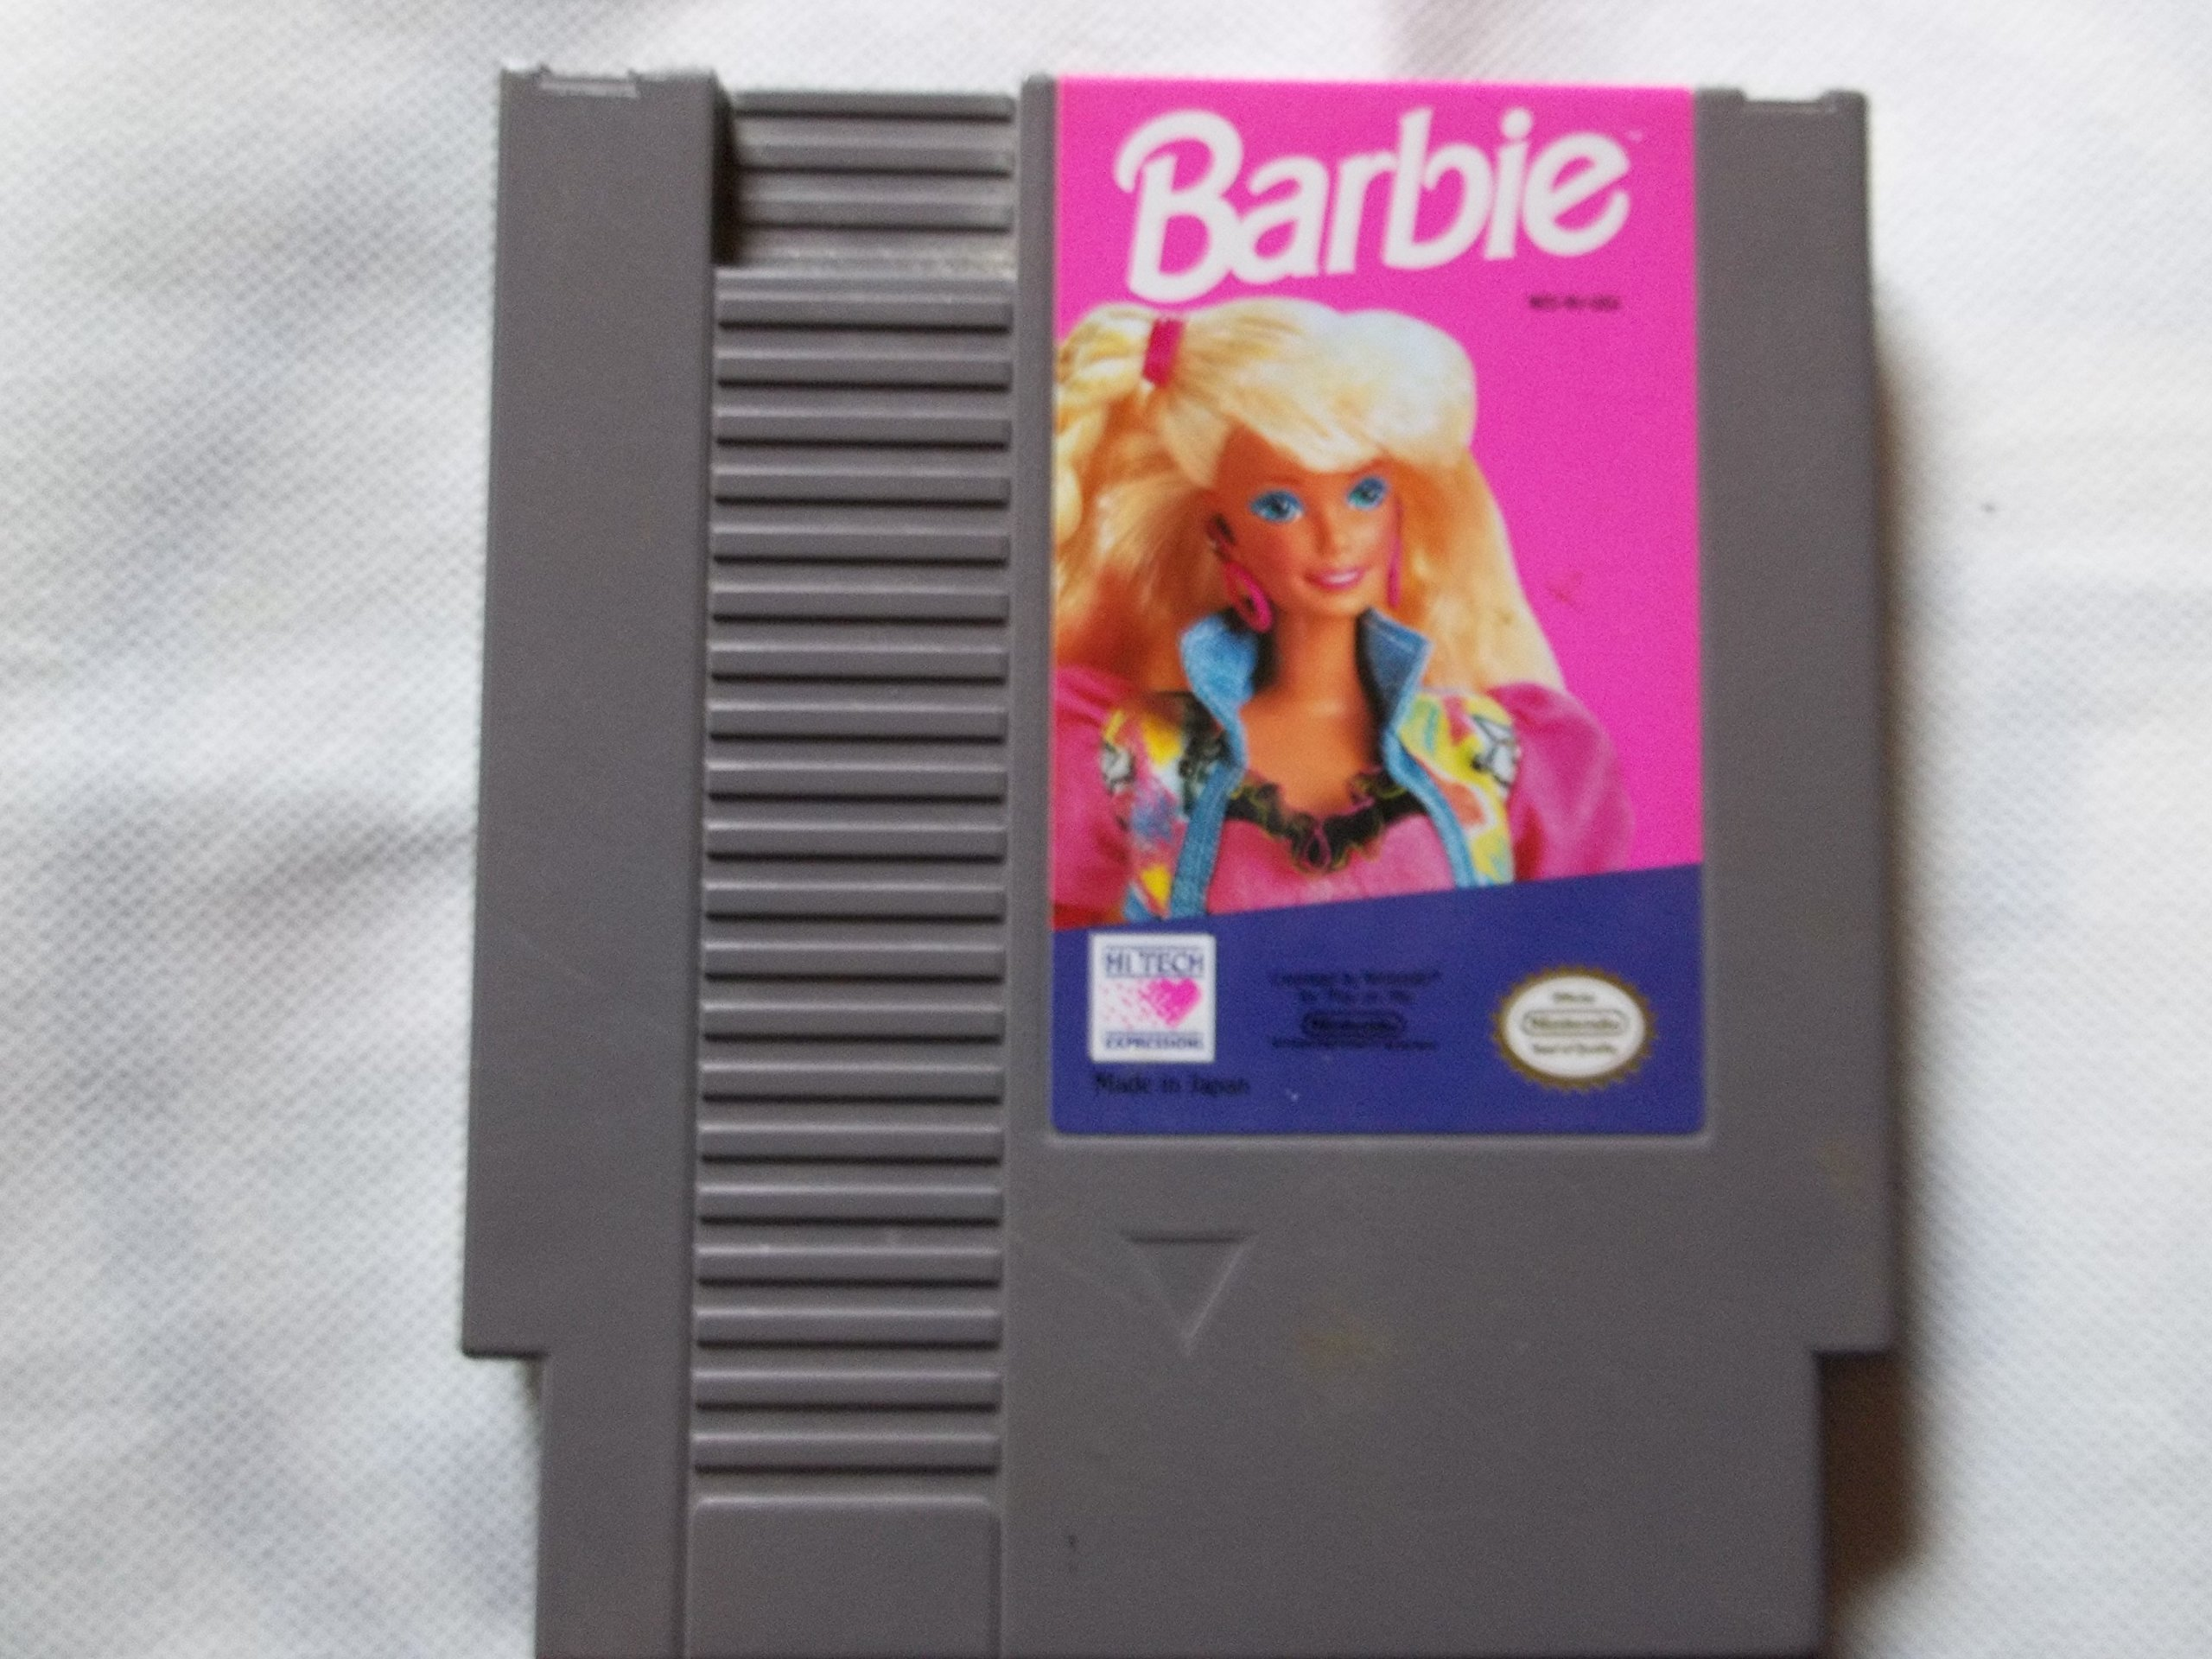 Barbie jet set and style wii photos barbie collections.